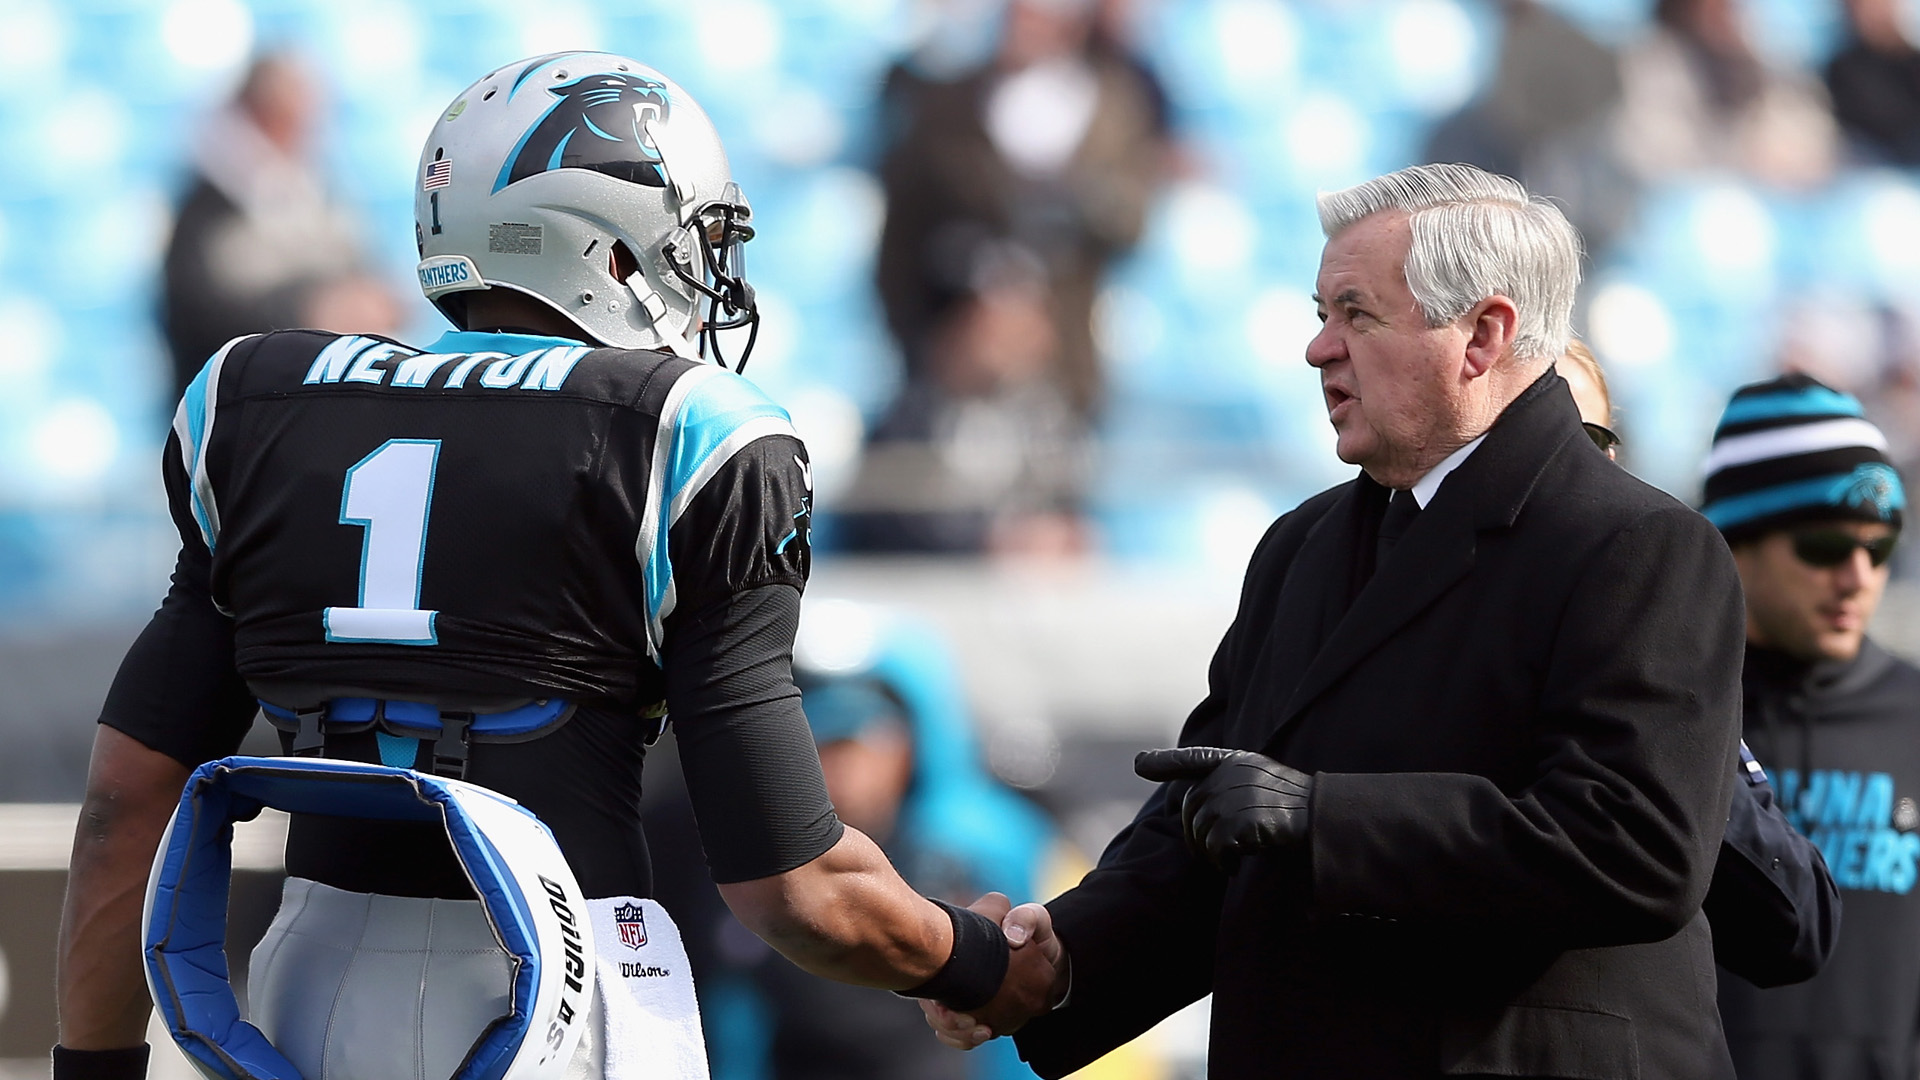 Panthers QB Cam Newton gets first tattoo, something reportedly forbidden by Jerry Richardson